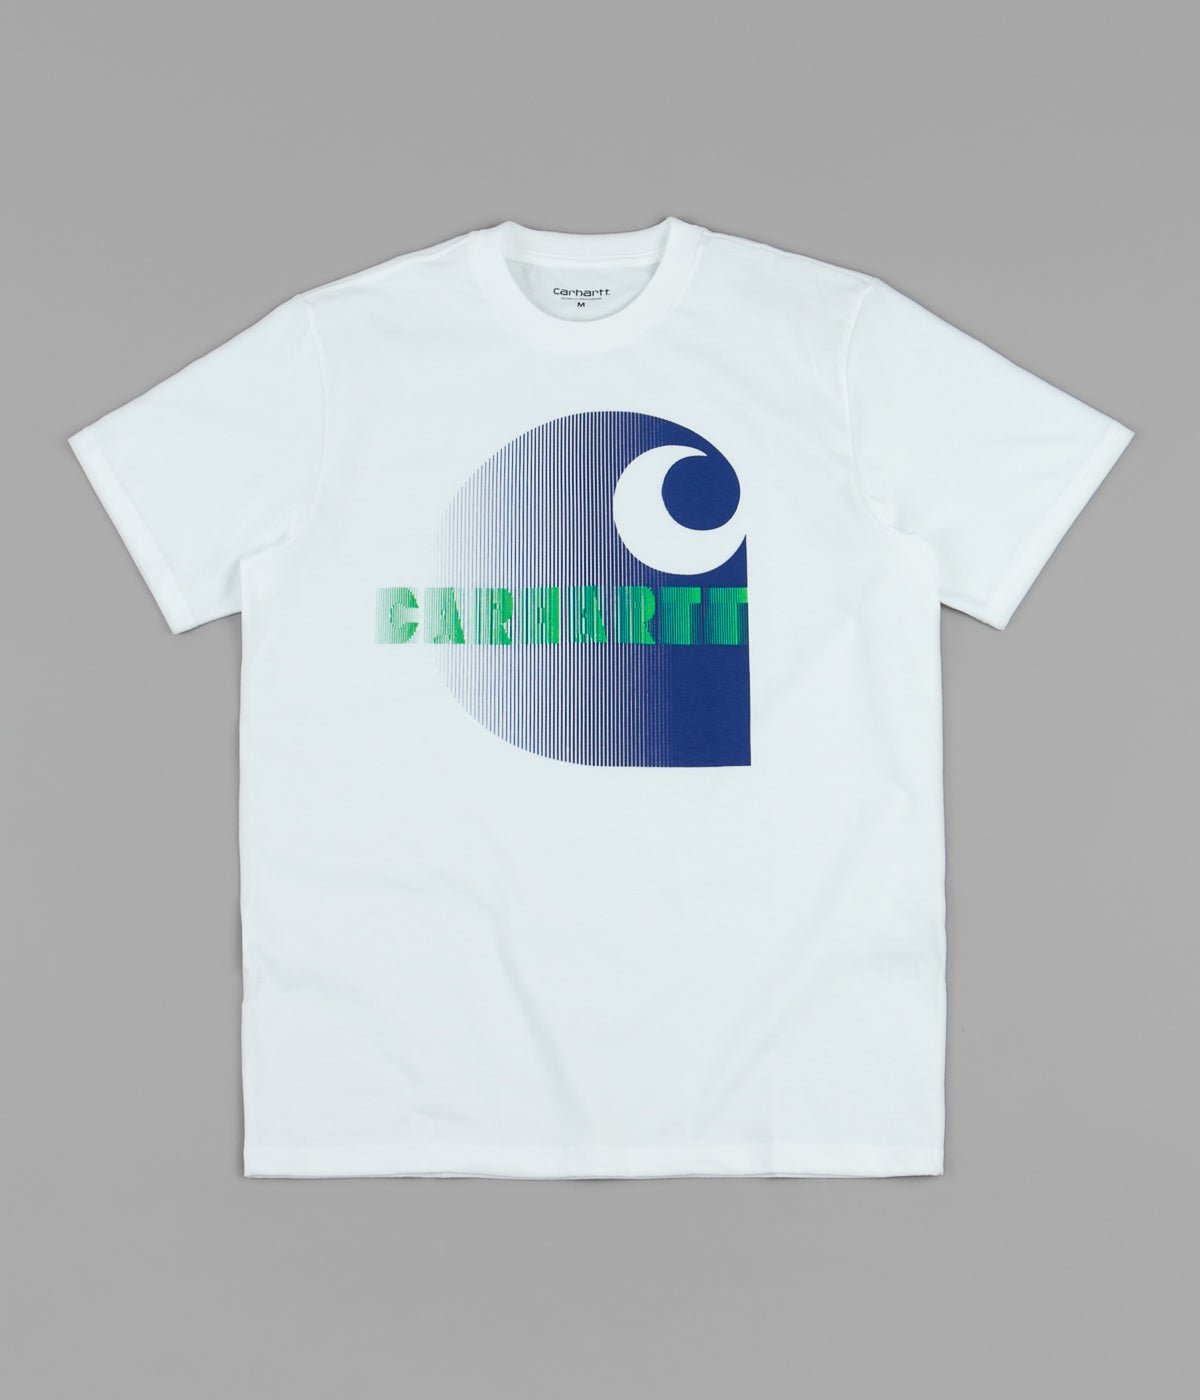 Carhartt Illusion T-Shirt - White